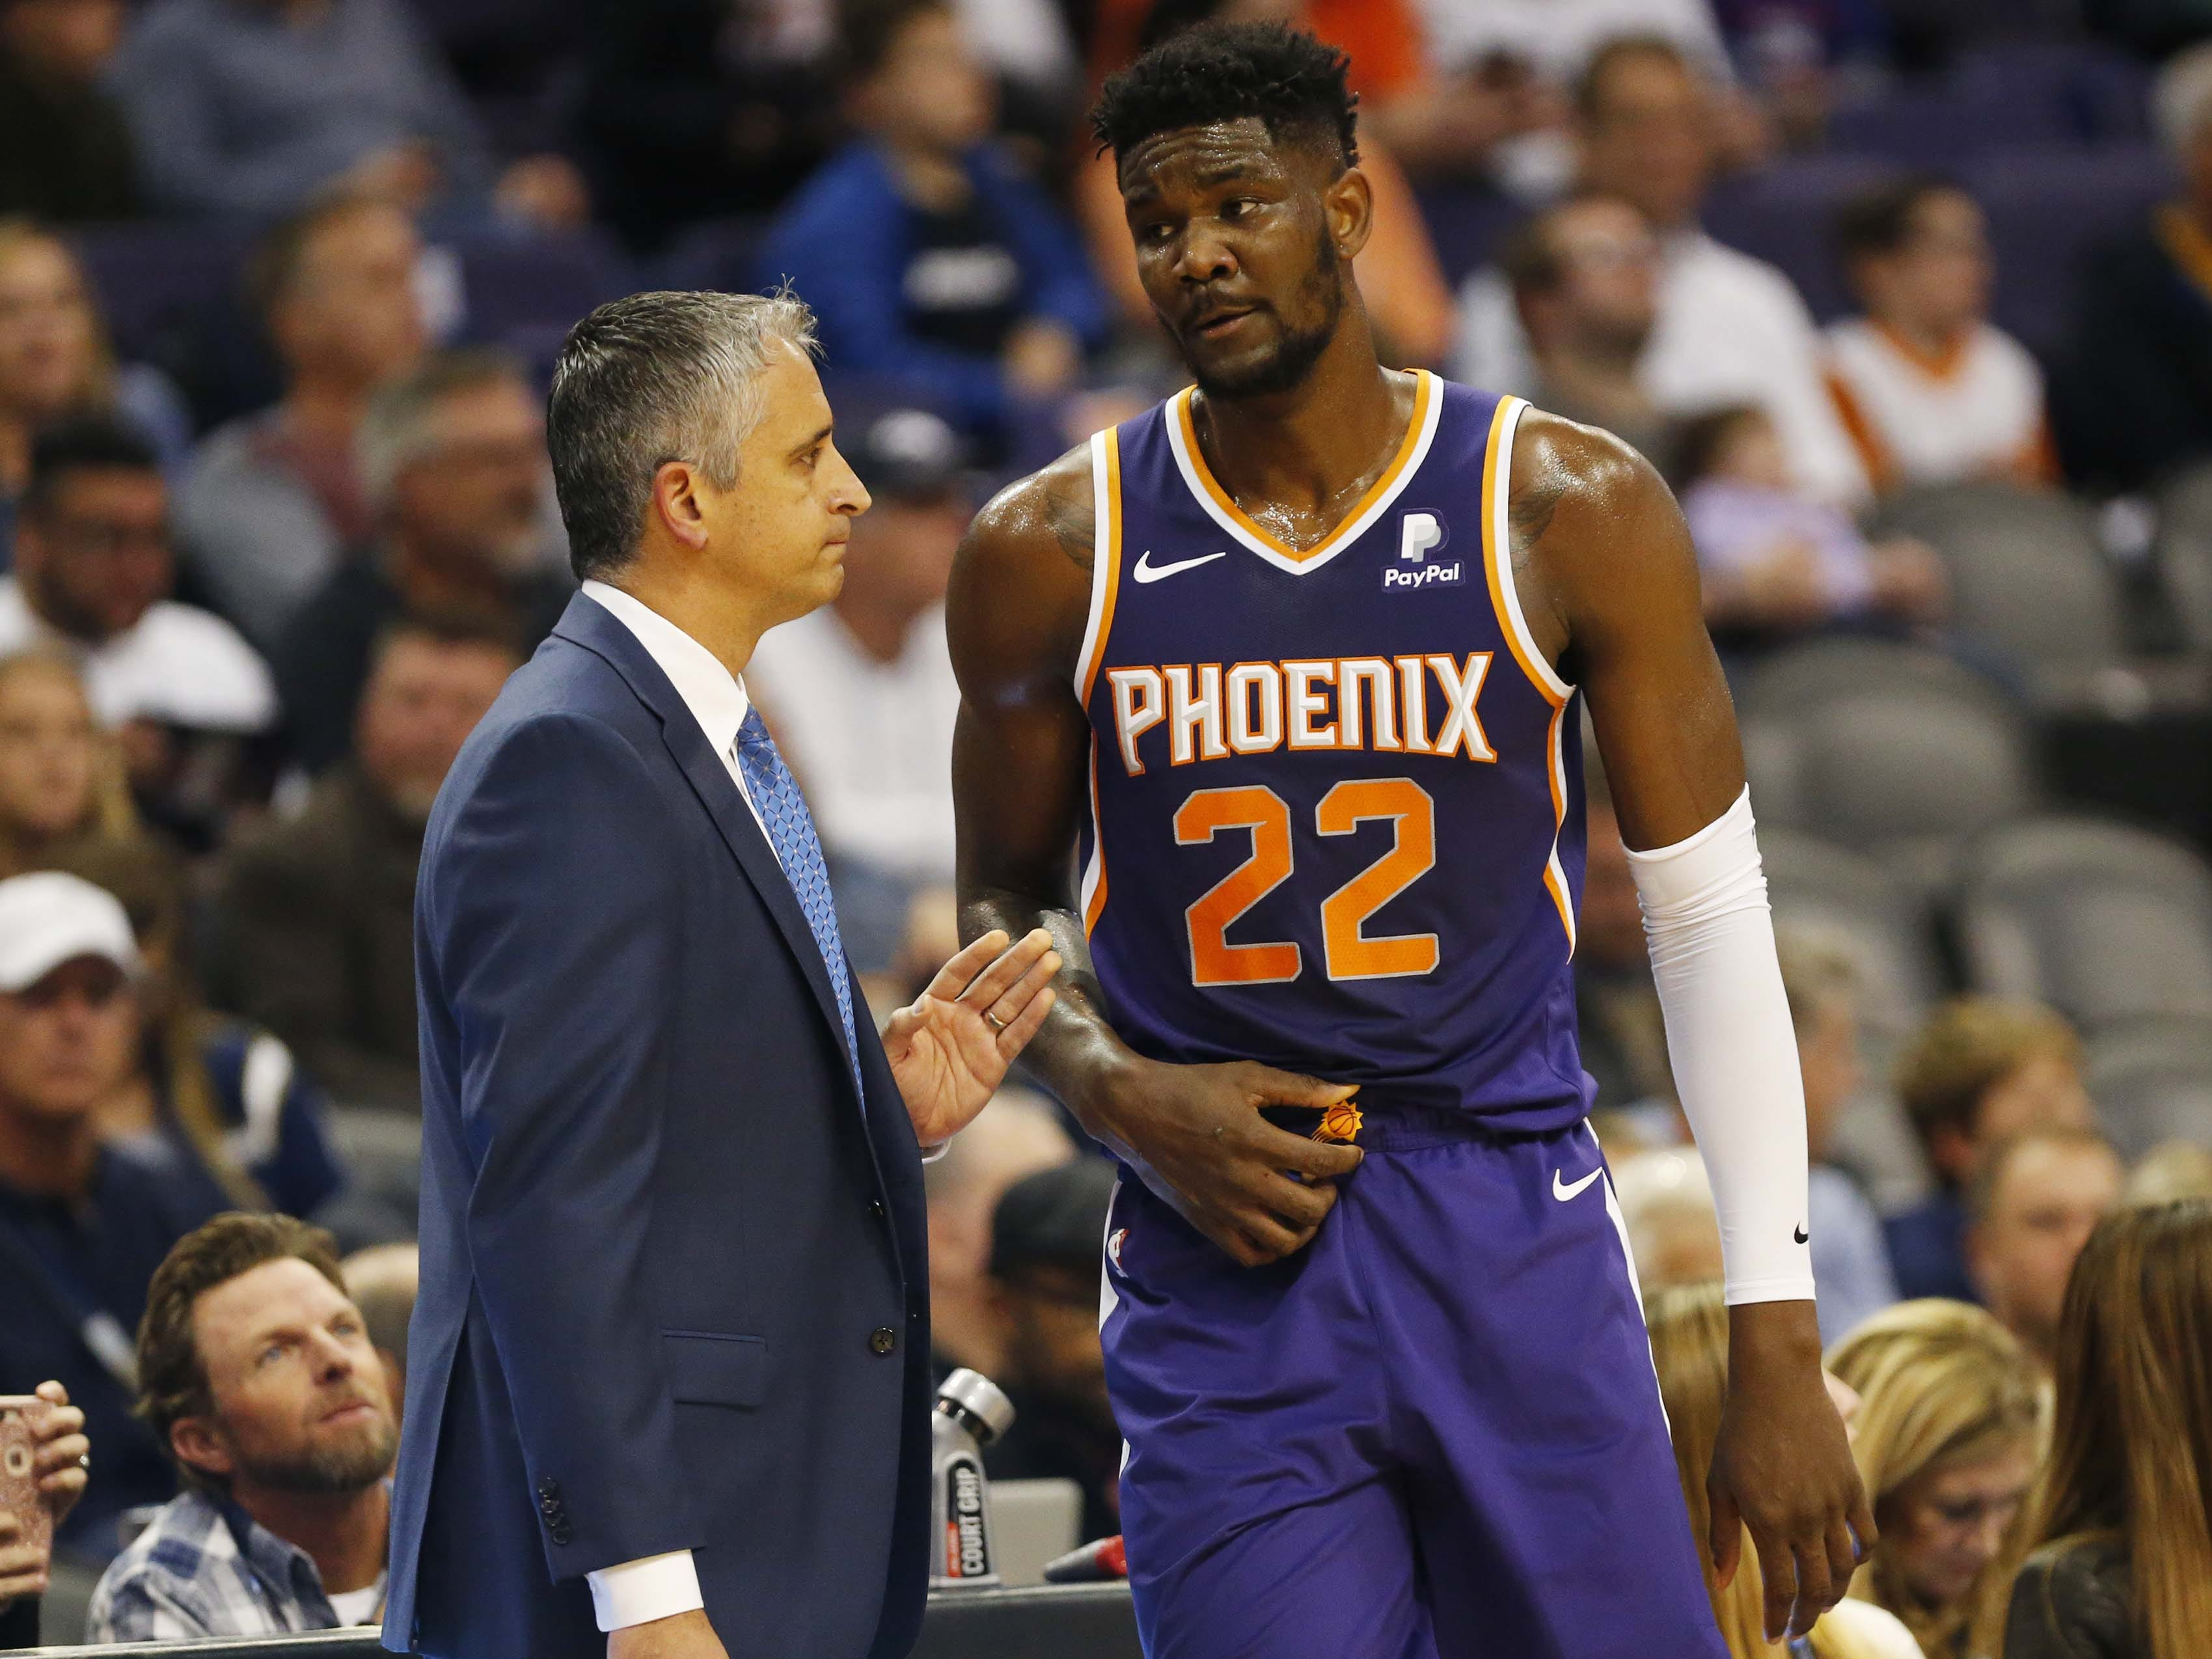 Phoenix Suns head coach Igor Kokoskov talks with Phoenix Suns center Deandre Ayton (22) during the first quarter against the Charlotte Hornets in Phoenix January 6, 2019.